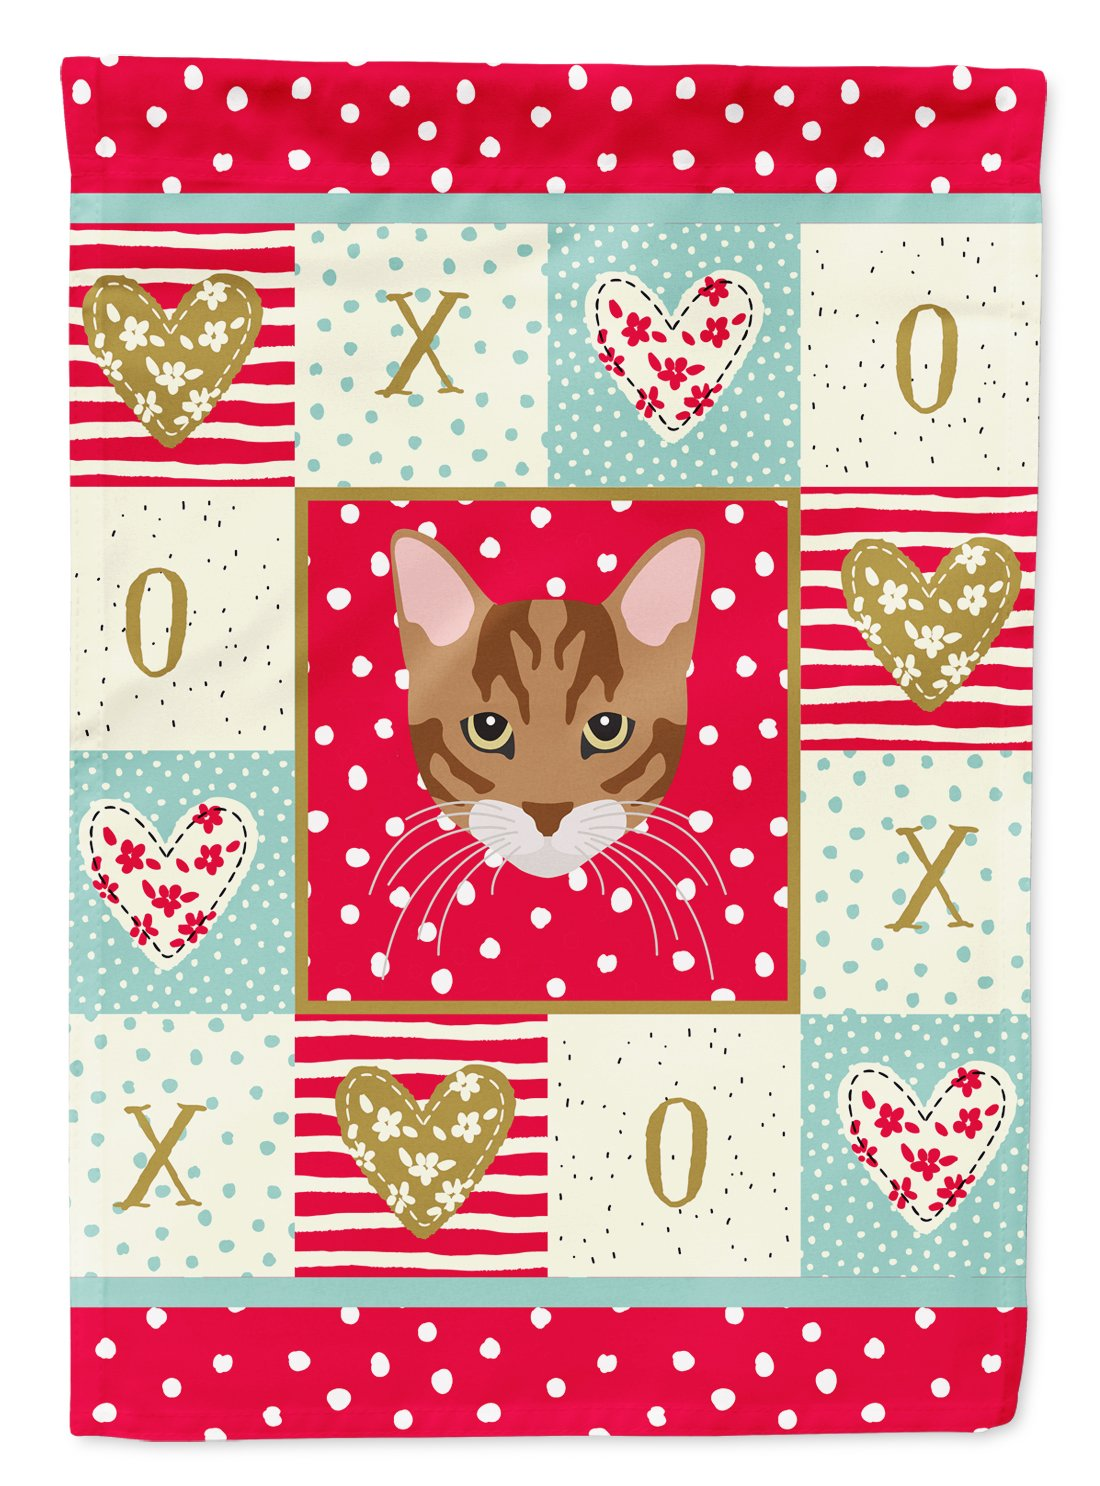 Toyger Cat Flag Garden Size CK5174GF by Caroline's Treasures